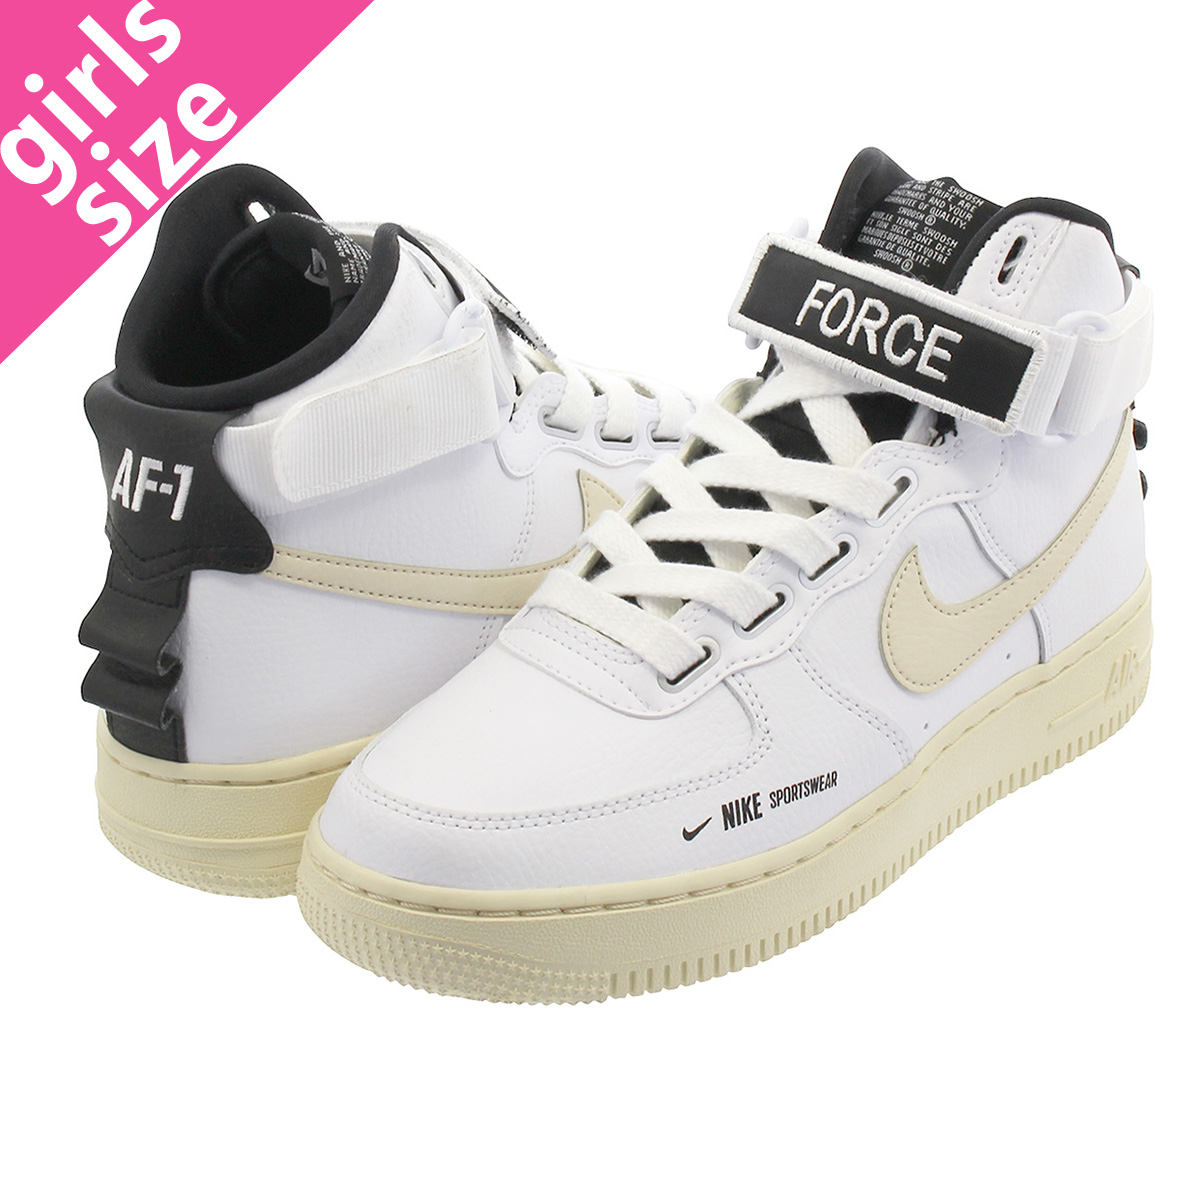 competitive price 7b96b 2f532 NIKE WMNS AIR FORCE 1 HI UTILITY Nike women air force 1 high utility WHITE   ...